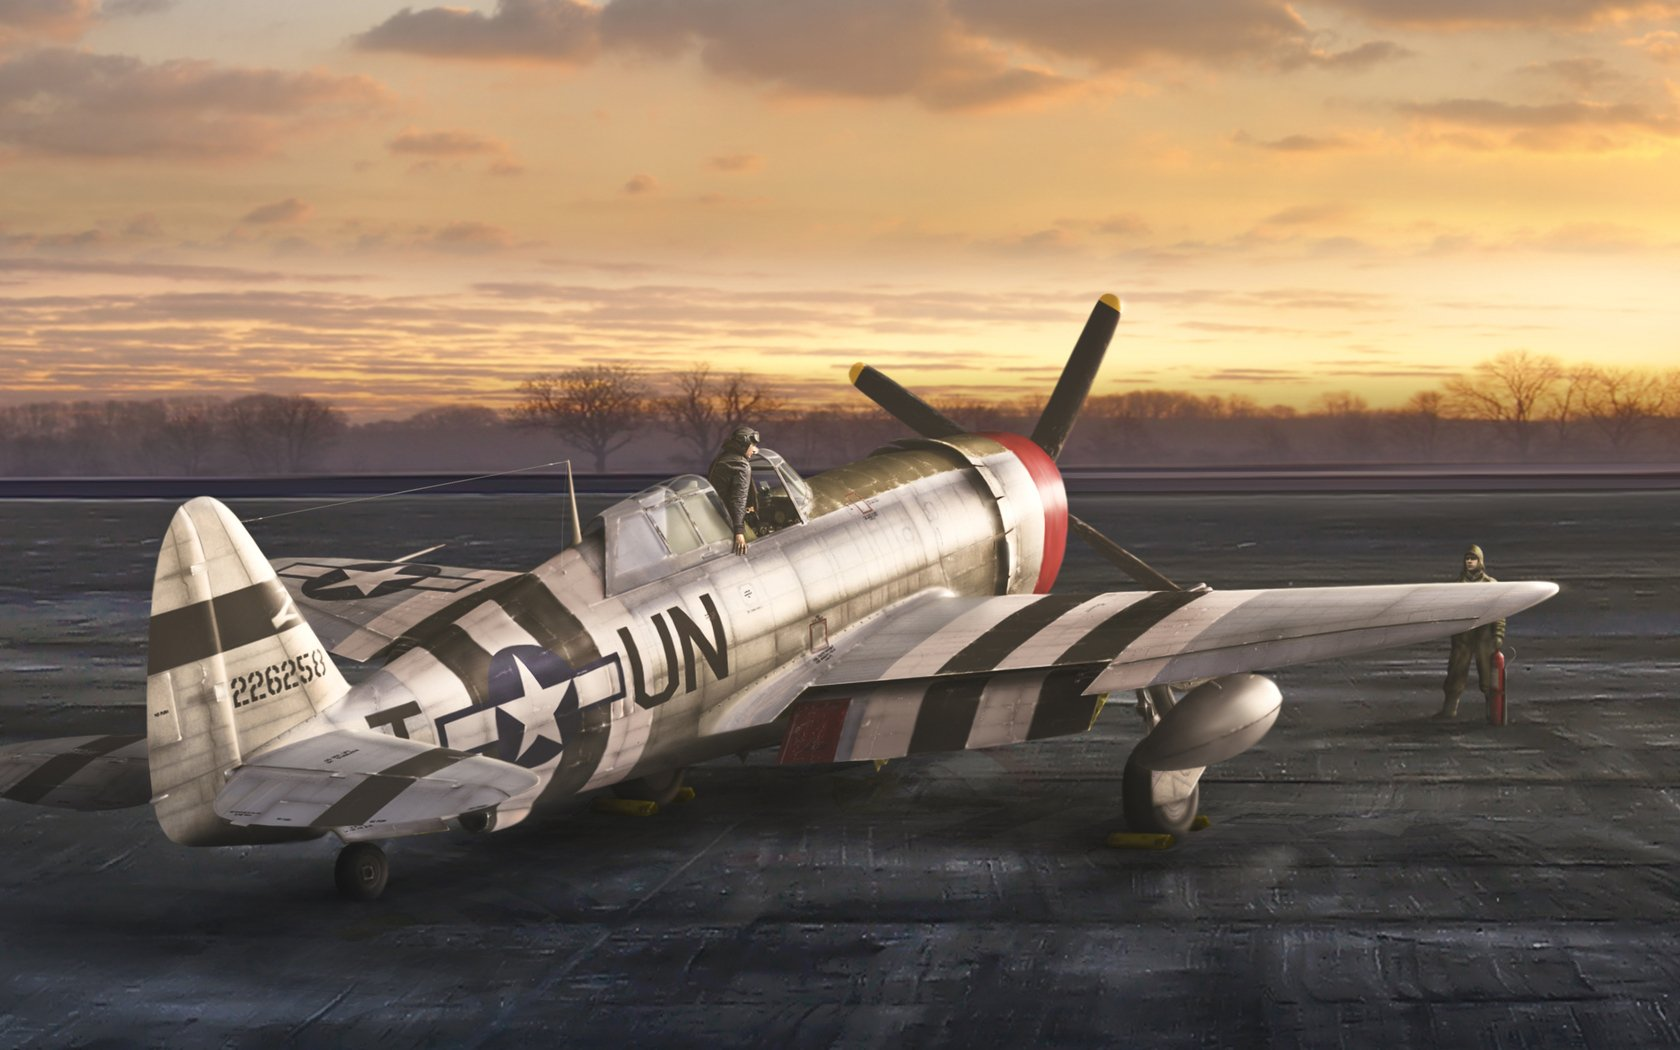 P 47 Thunderbolt Wallpaper and Background Image 1680x1050 ID 1680x1050